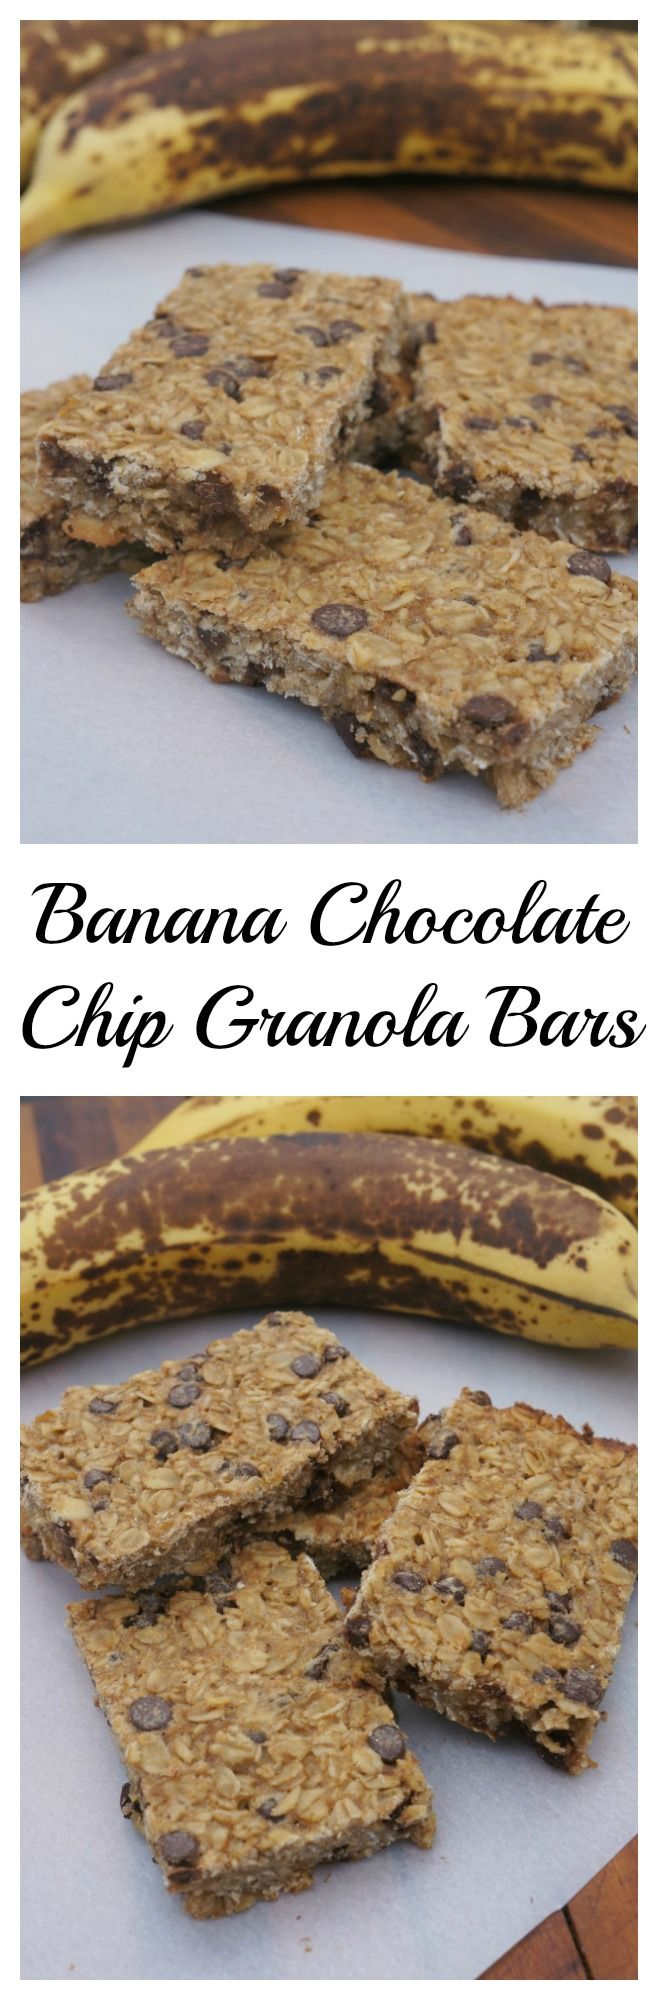 These banana chocolate chip granola bars are perfect for a healthy breakfast, snack or treat. p